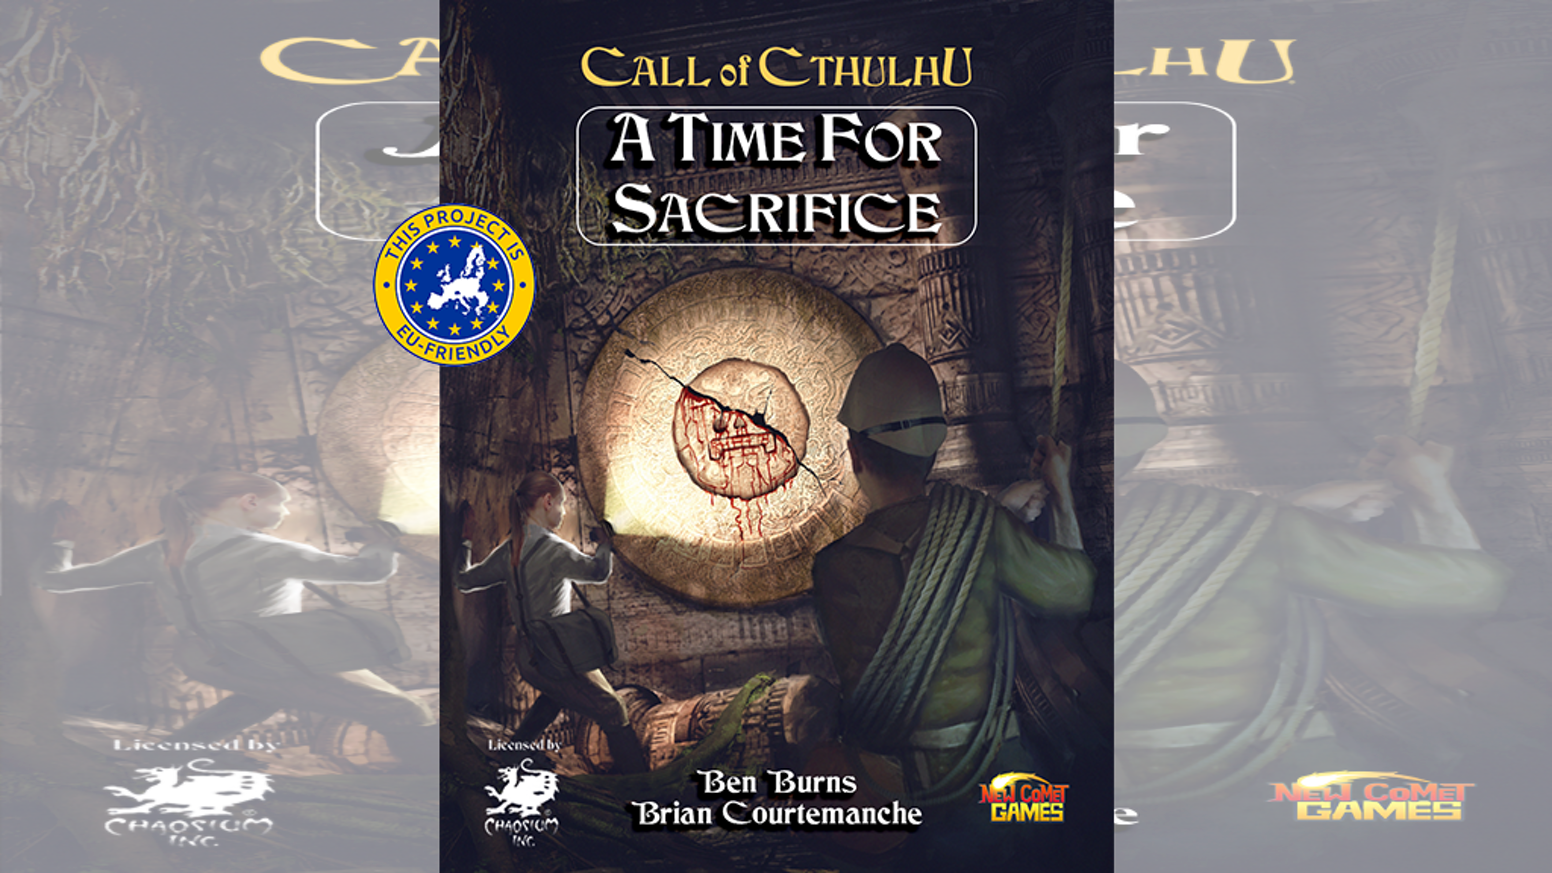 """""""A Time For Sacrifice"""" is a Call of Cthulhu 7th edition adventure book set in Central/South America in the classic 1920's time era."""